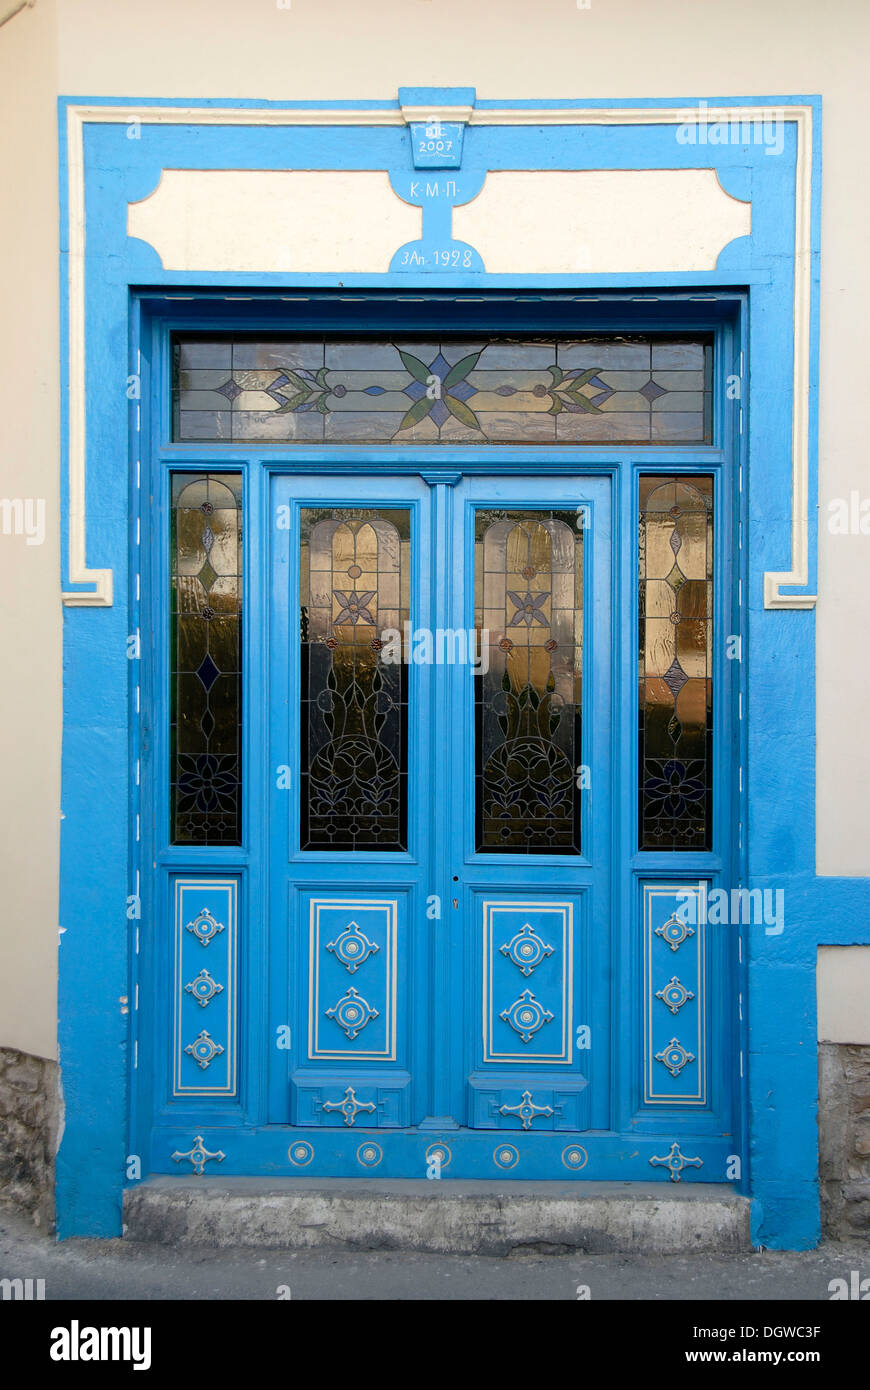 Ornate blue front door with glass, Pano Lefkara, Southern Cyprus, Republic of Cyprus, the Mediterranean, Europe - Stock Image